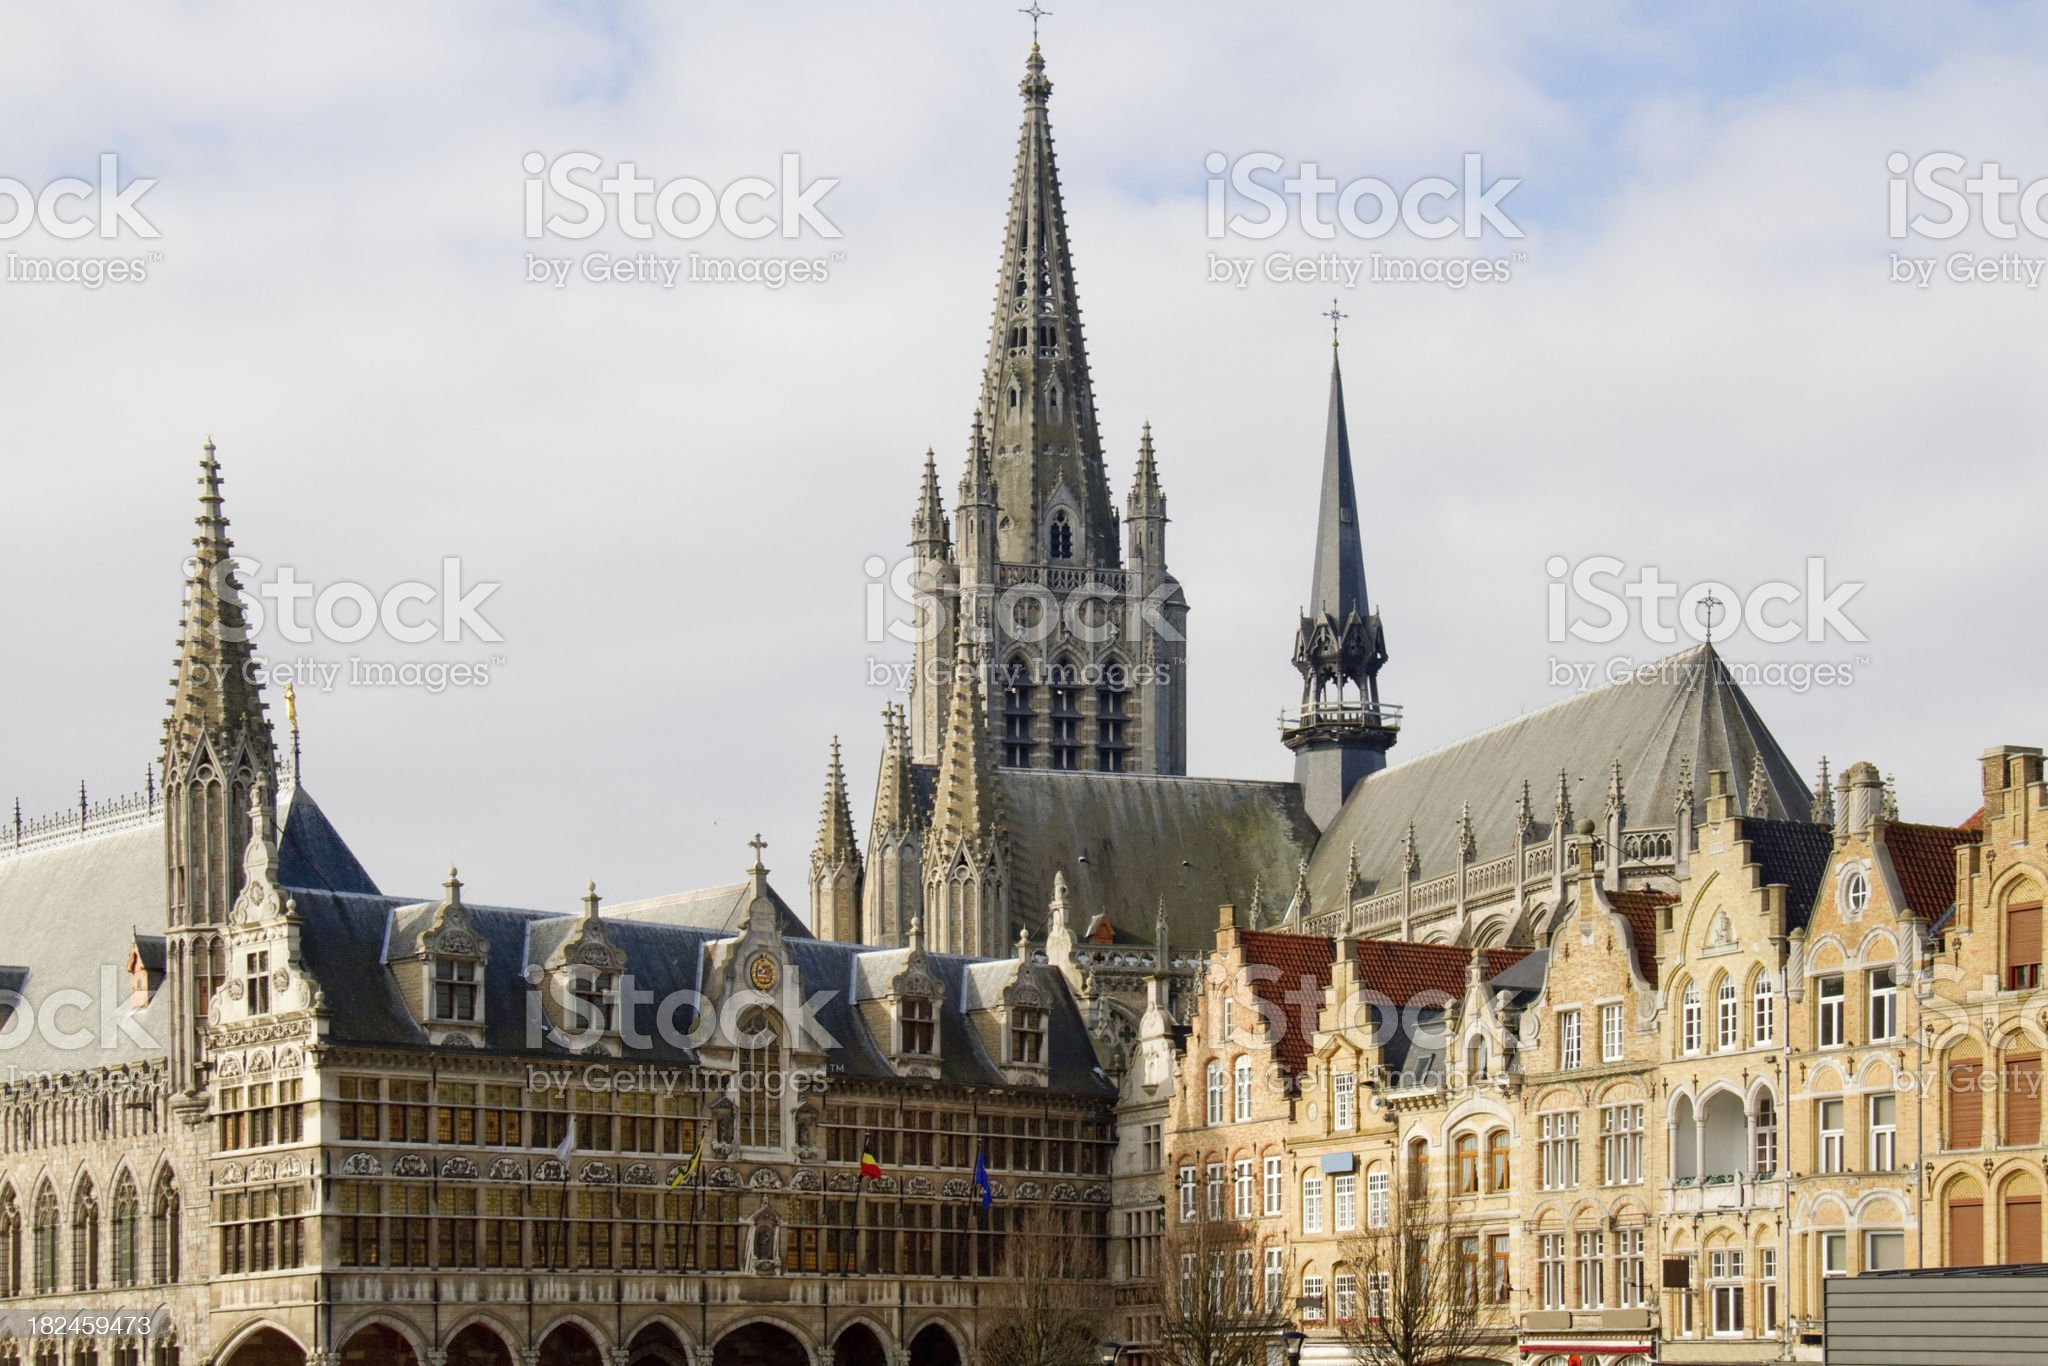 Cloth Market building and main square - Ypres, Belgium royalty-free stock photo